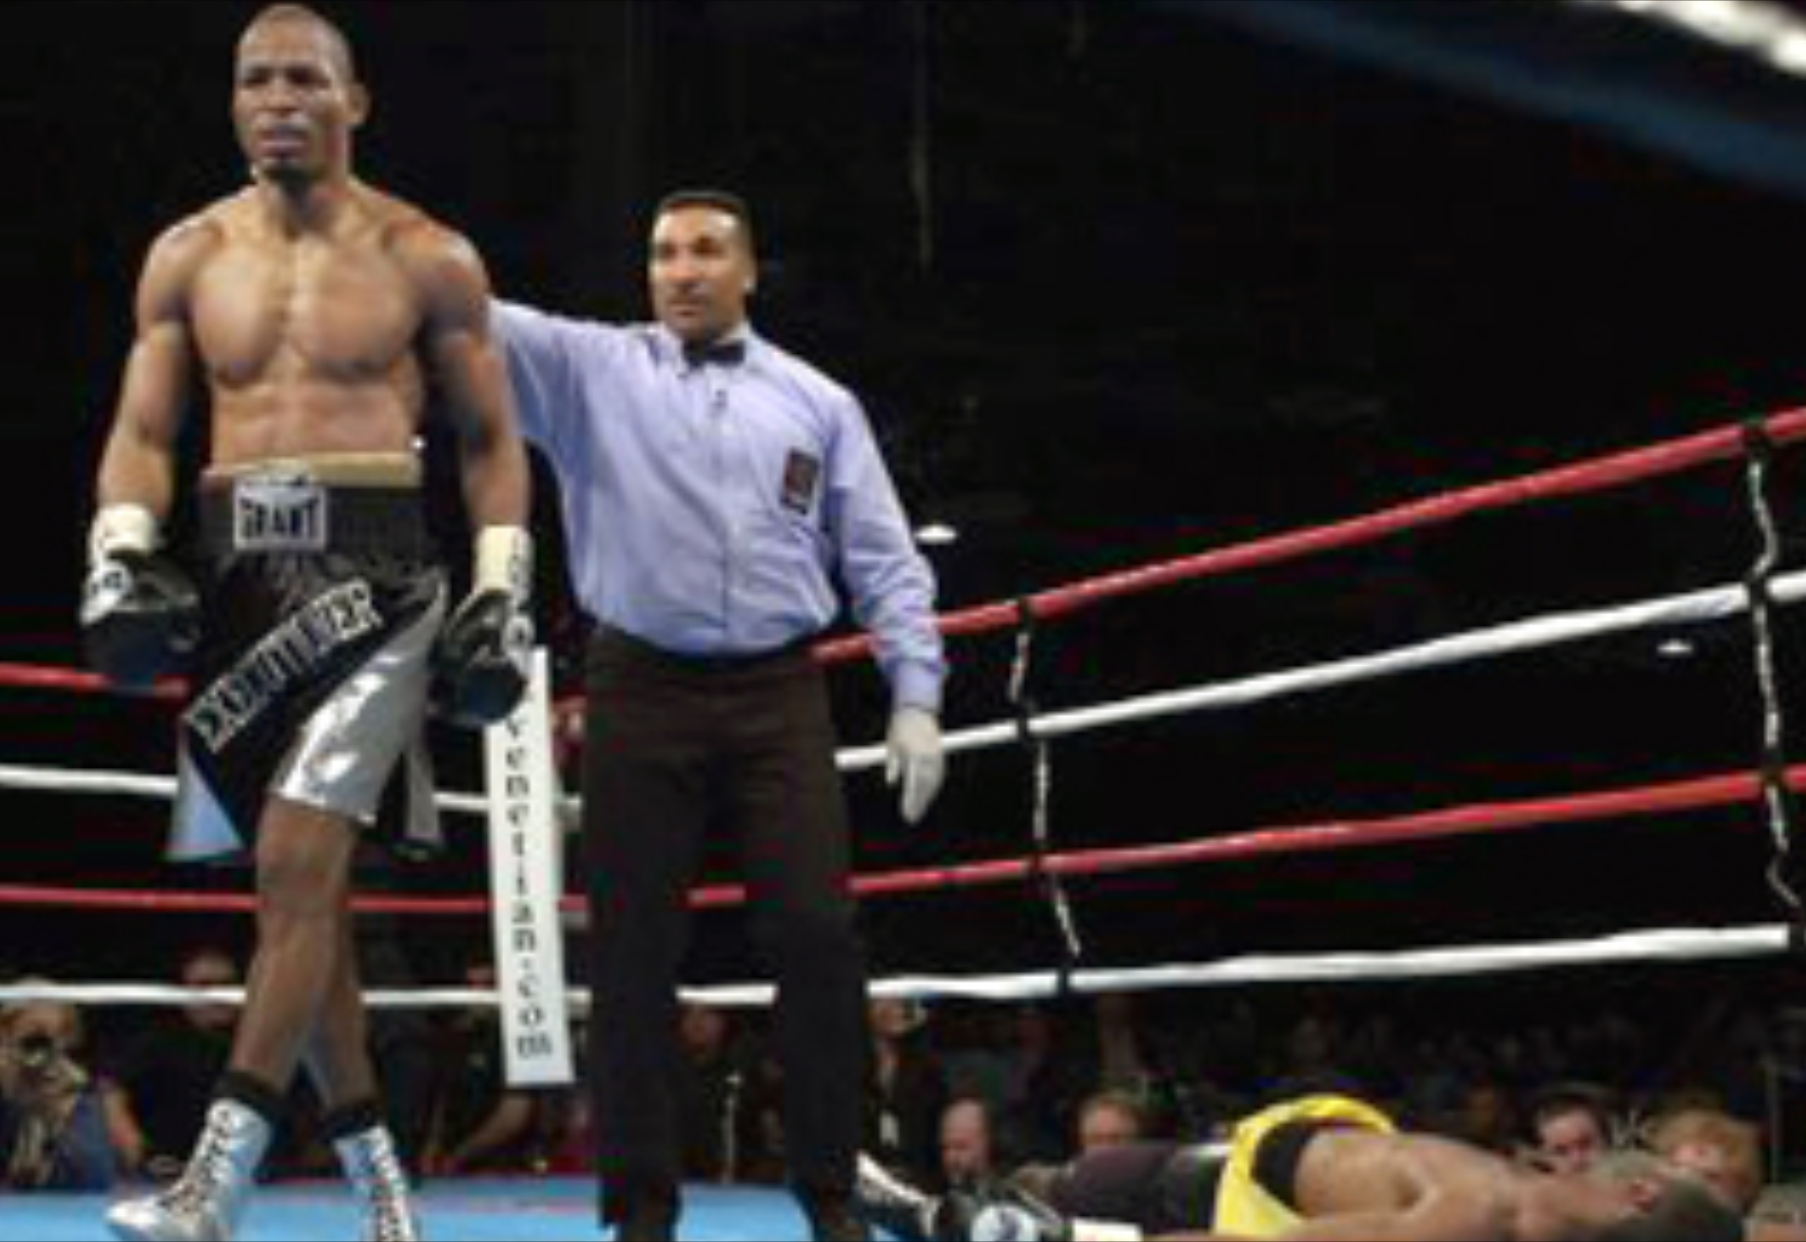 Bernard Hopkins walks away from a fallen Antwun Echols. Photo: AP